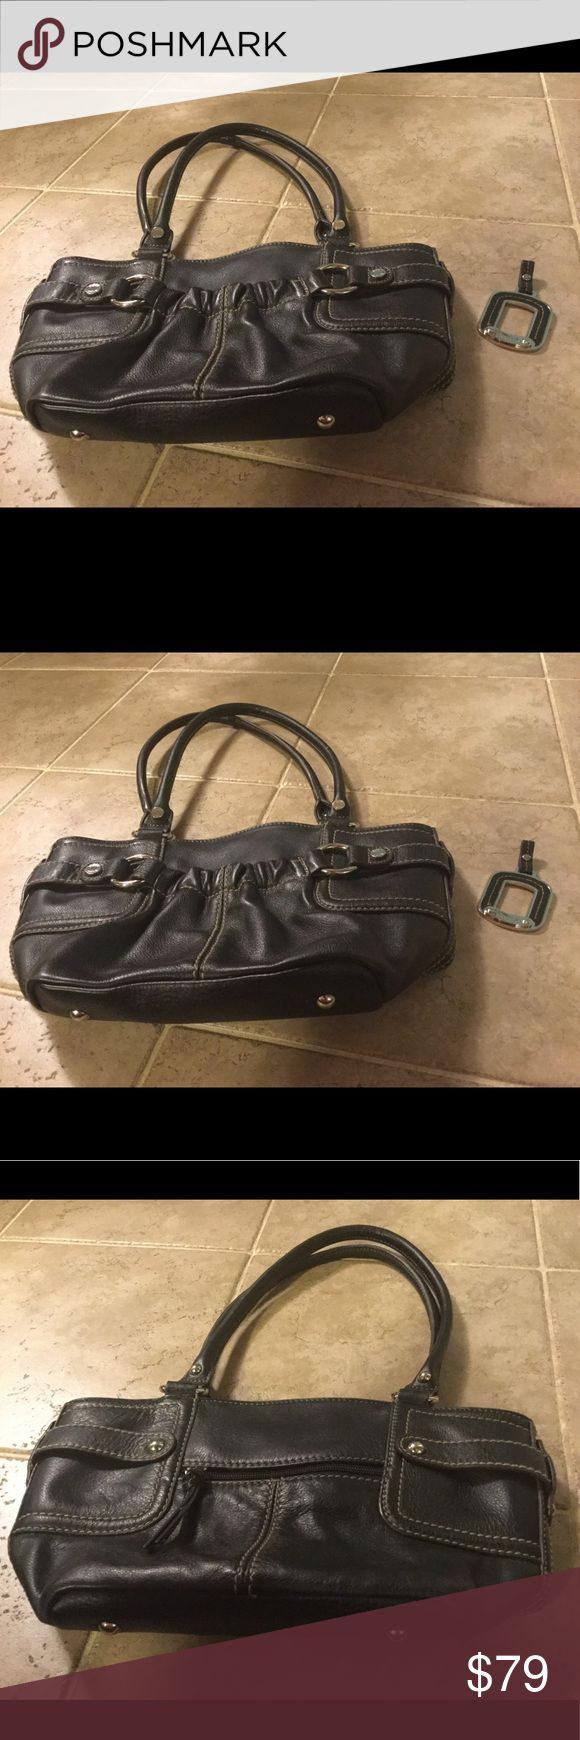 Tignanello Handbag Black leather Tiganello handbag in excellent used condition. Gorgeous silk lining. Also includes key chain. Tignanello Bags